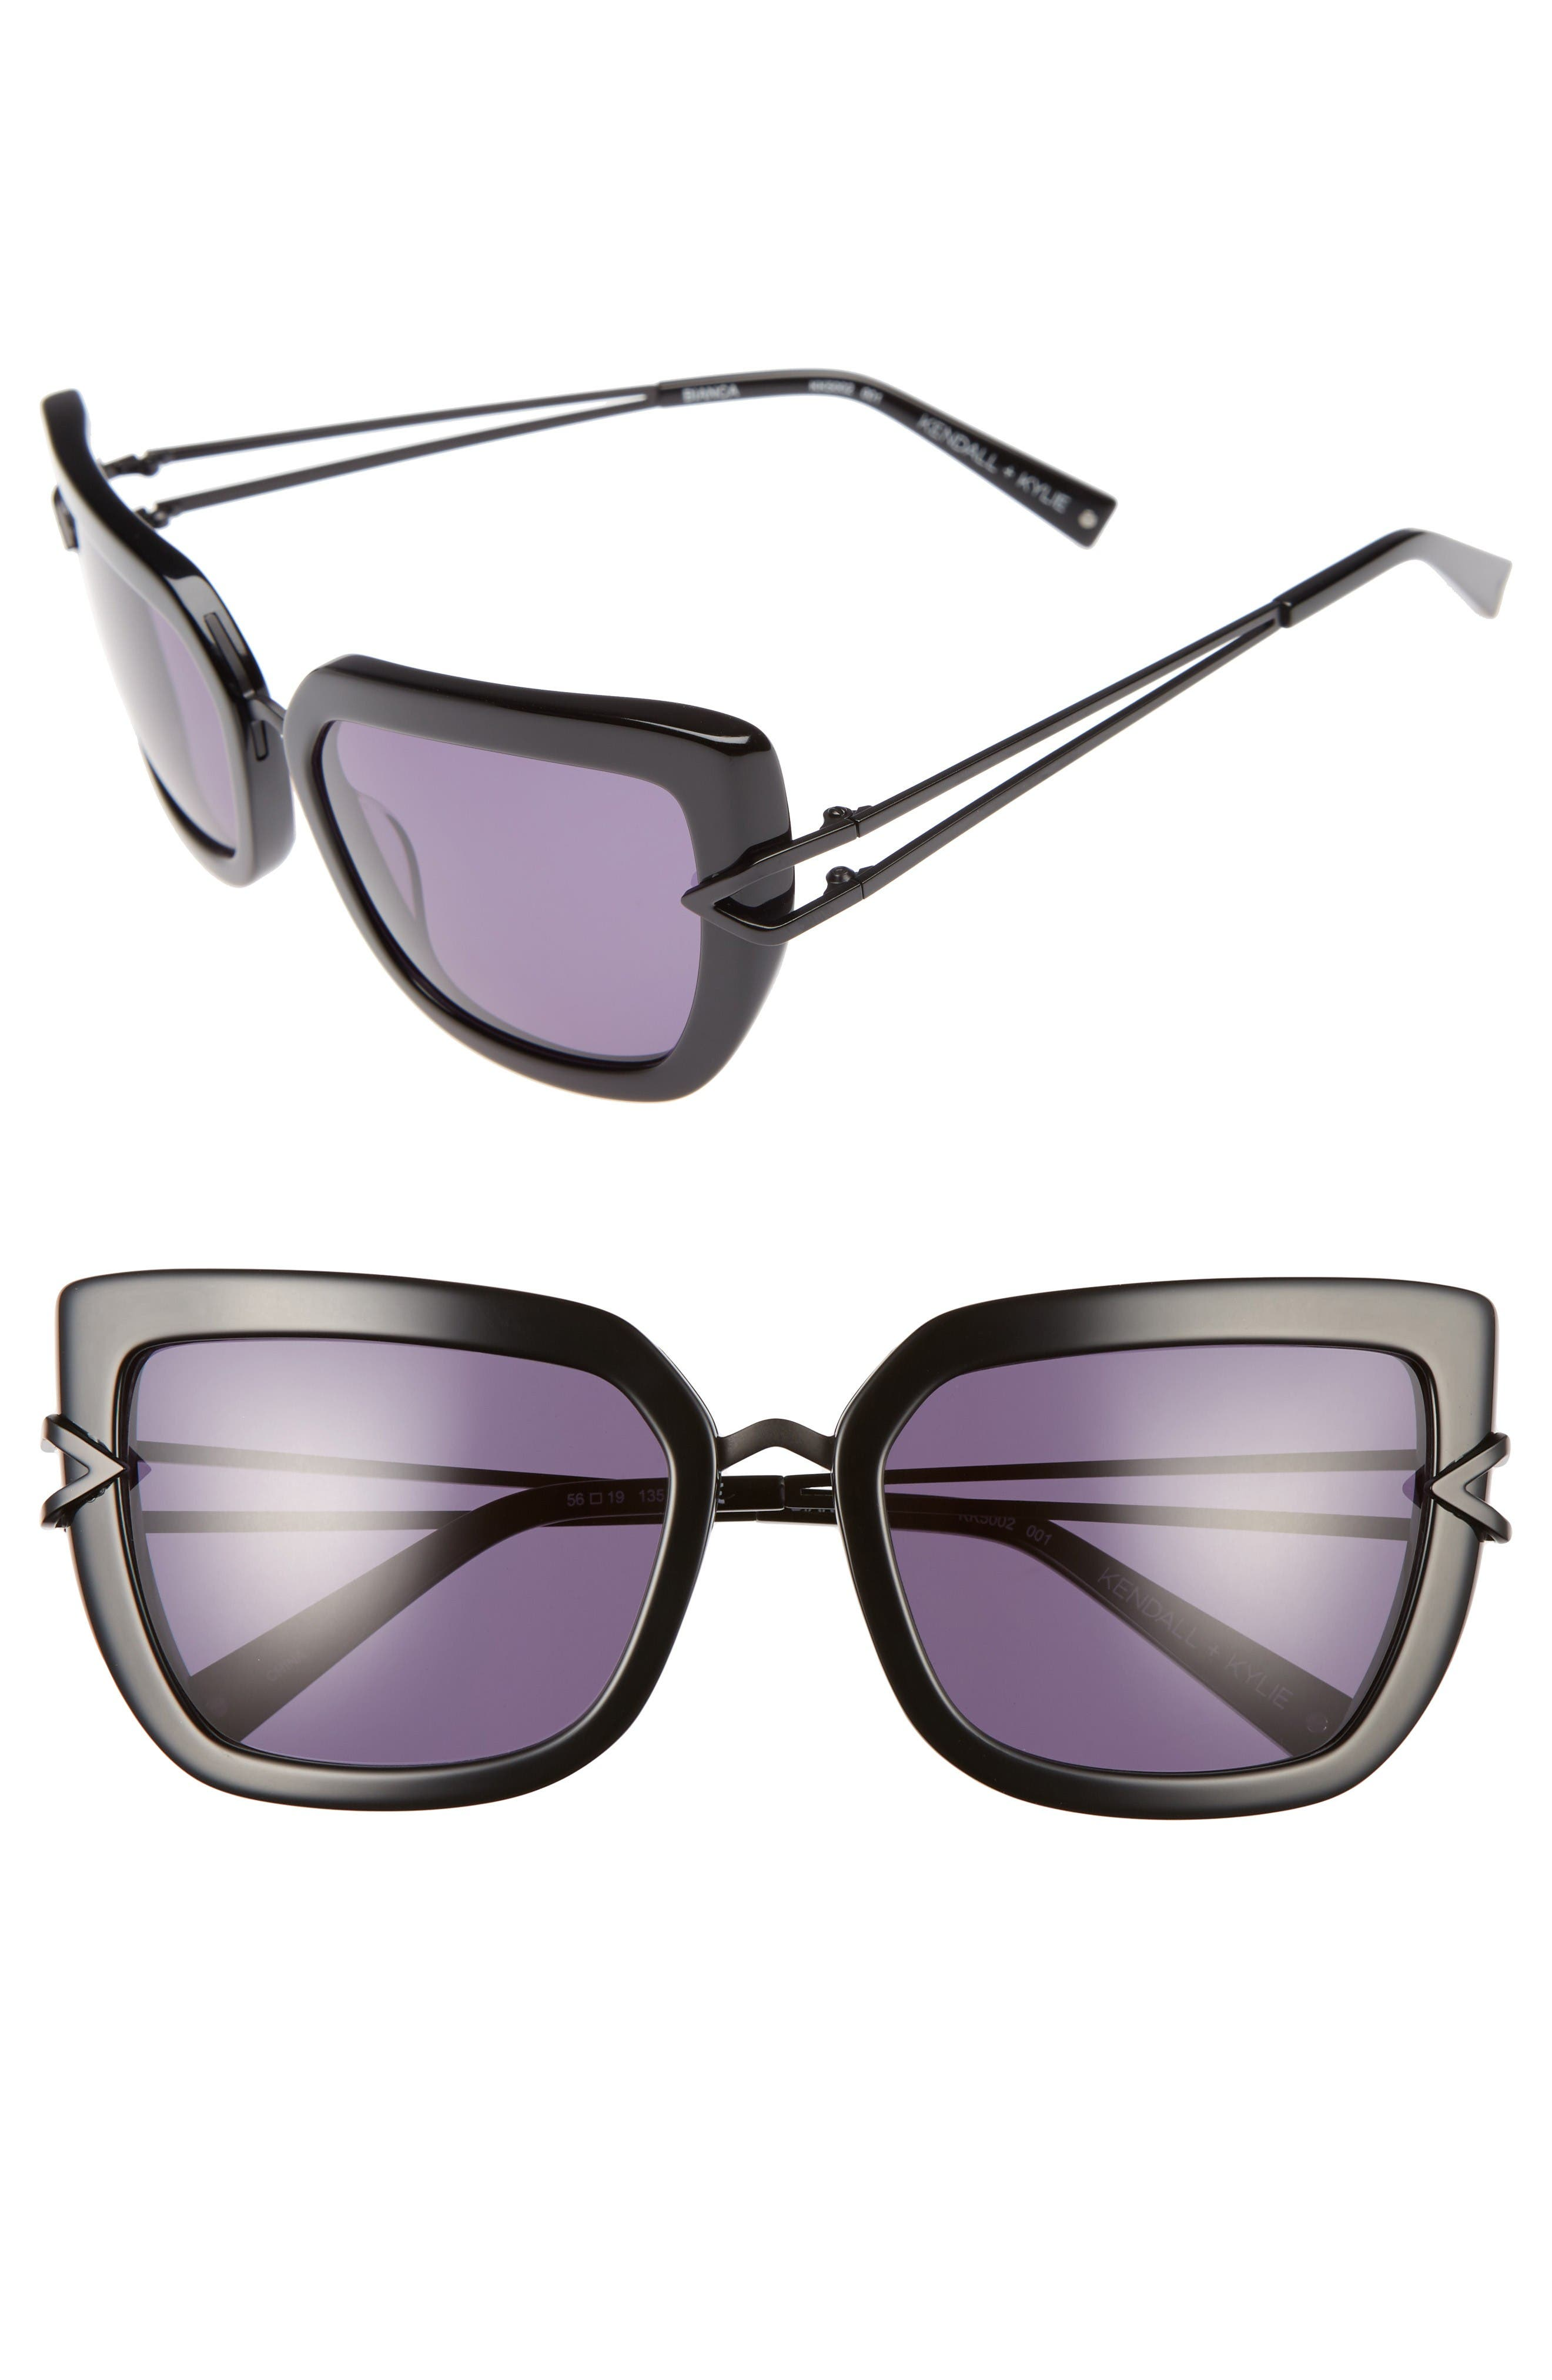 Alternate Image 1 Selected - KENDALL + KYLIE Bianca 56mm Cat Eye Sunglasses